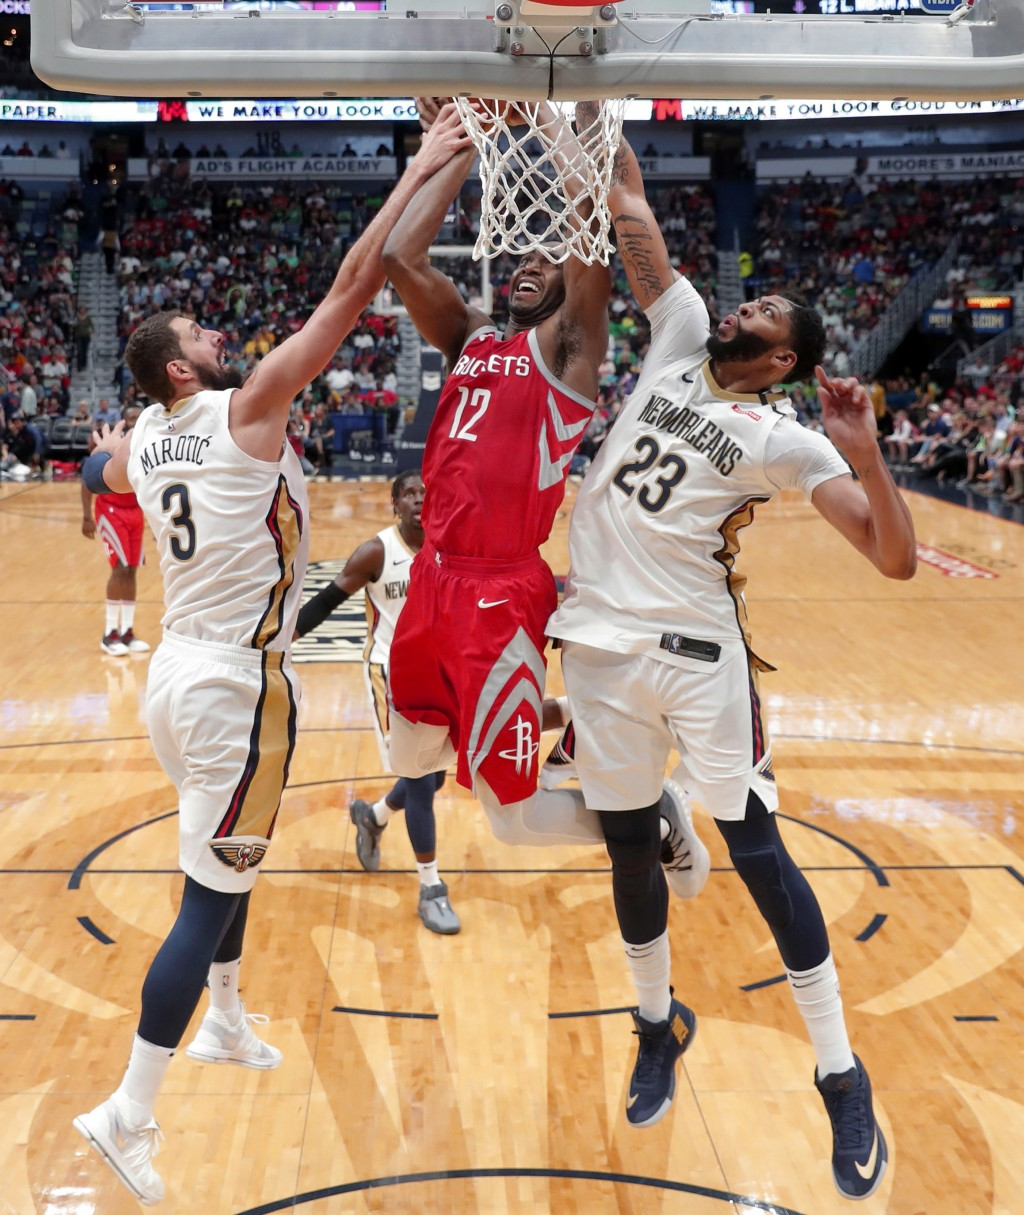 Houston Rockets forward Luc Mbah a Moute (12) is stopped by New Orleans Pelicans forwards Anthony Davis (23) and Nikola Mirotic (3) as he drives to th...